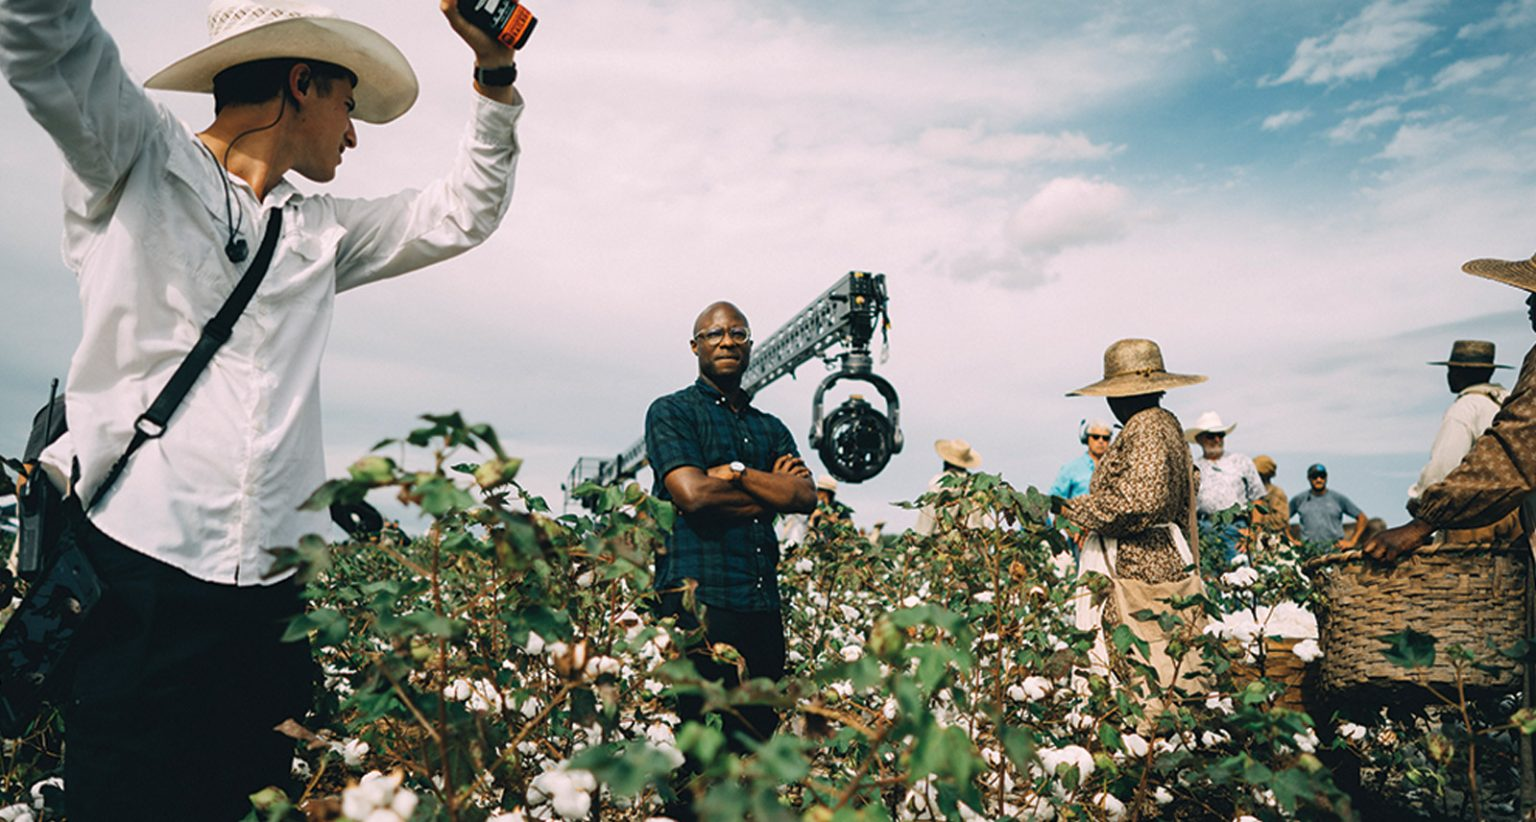 Barry Jenkins on Making 'The Underground Railroad' During One of the Largest Civil Rights Movements in American History